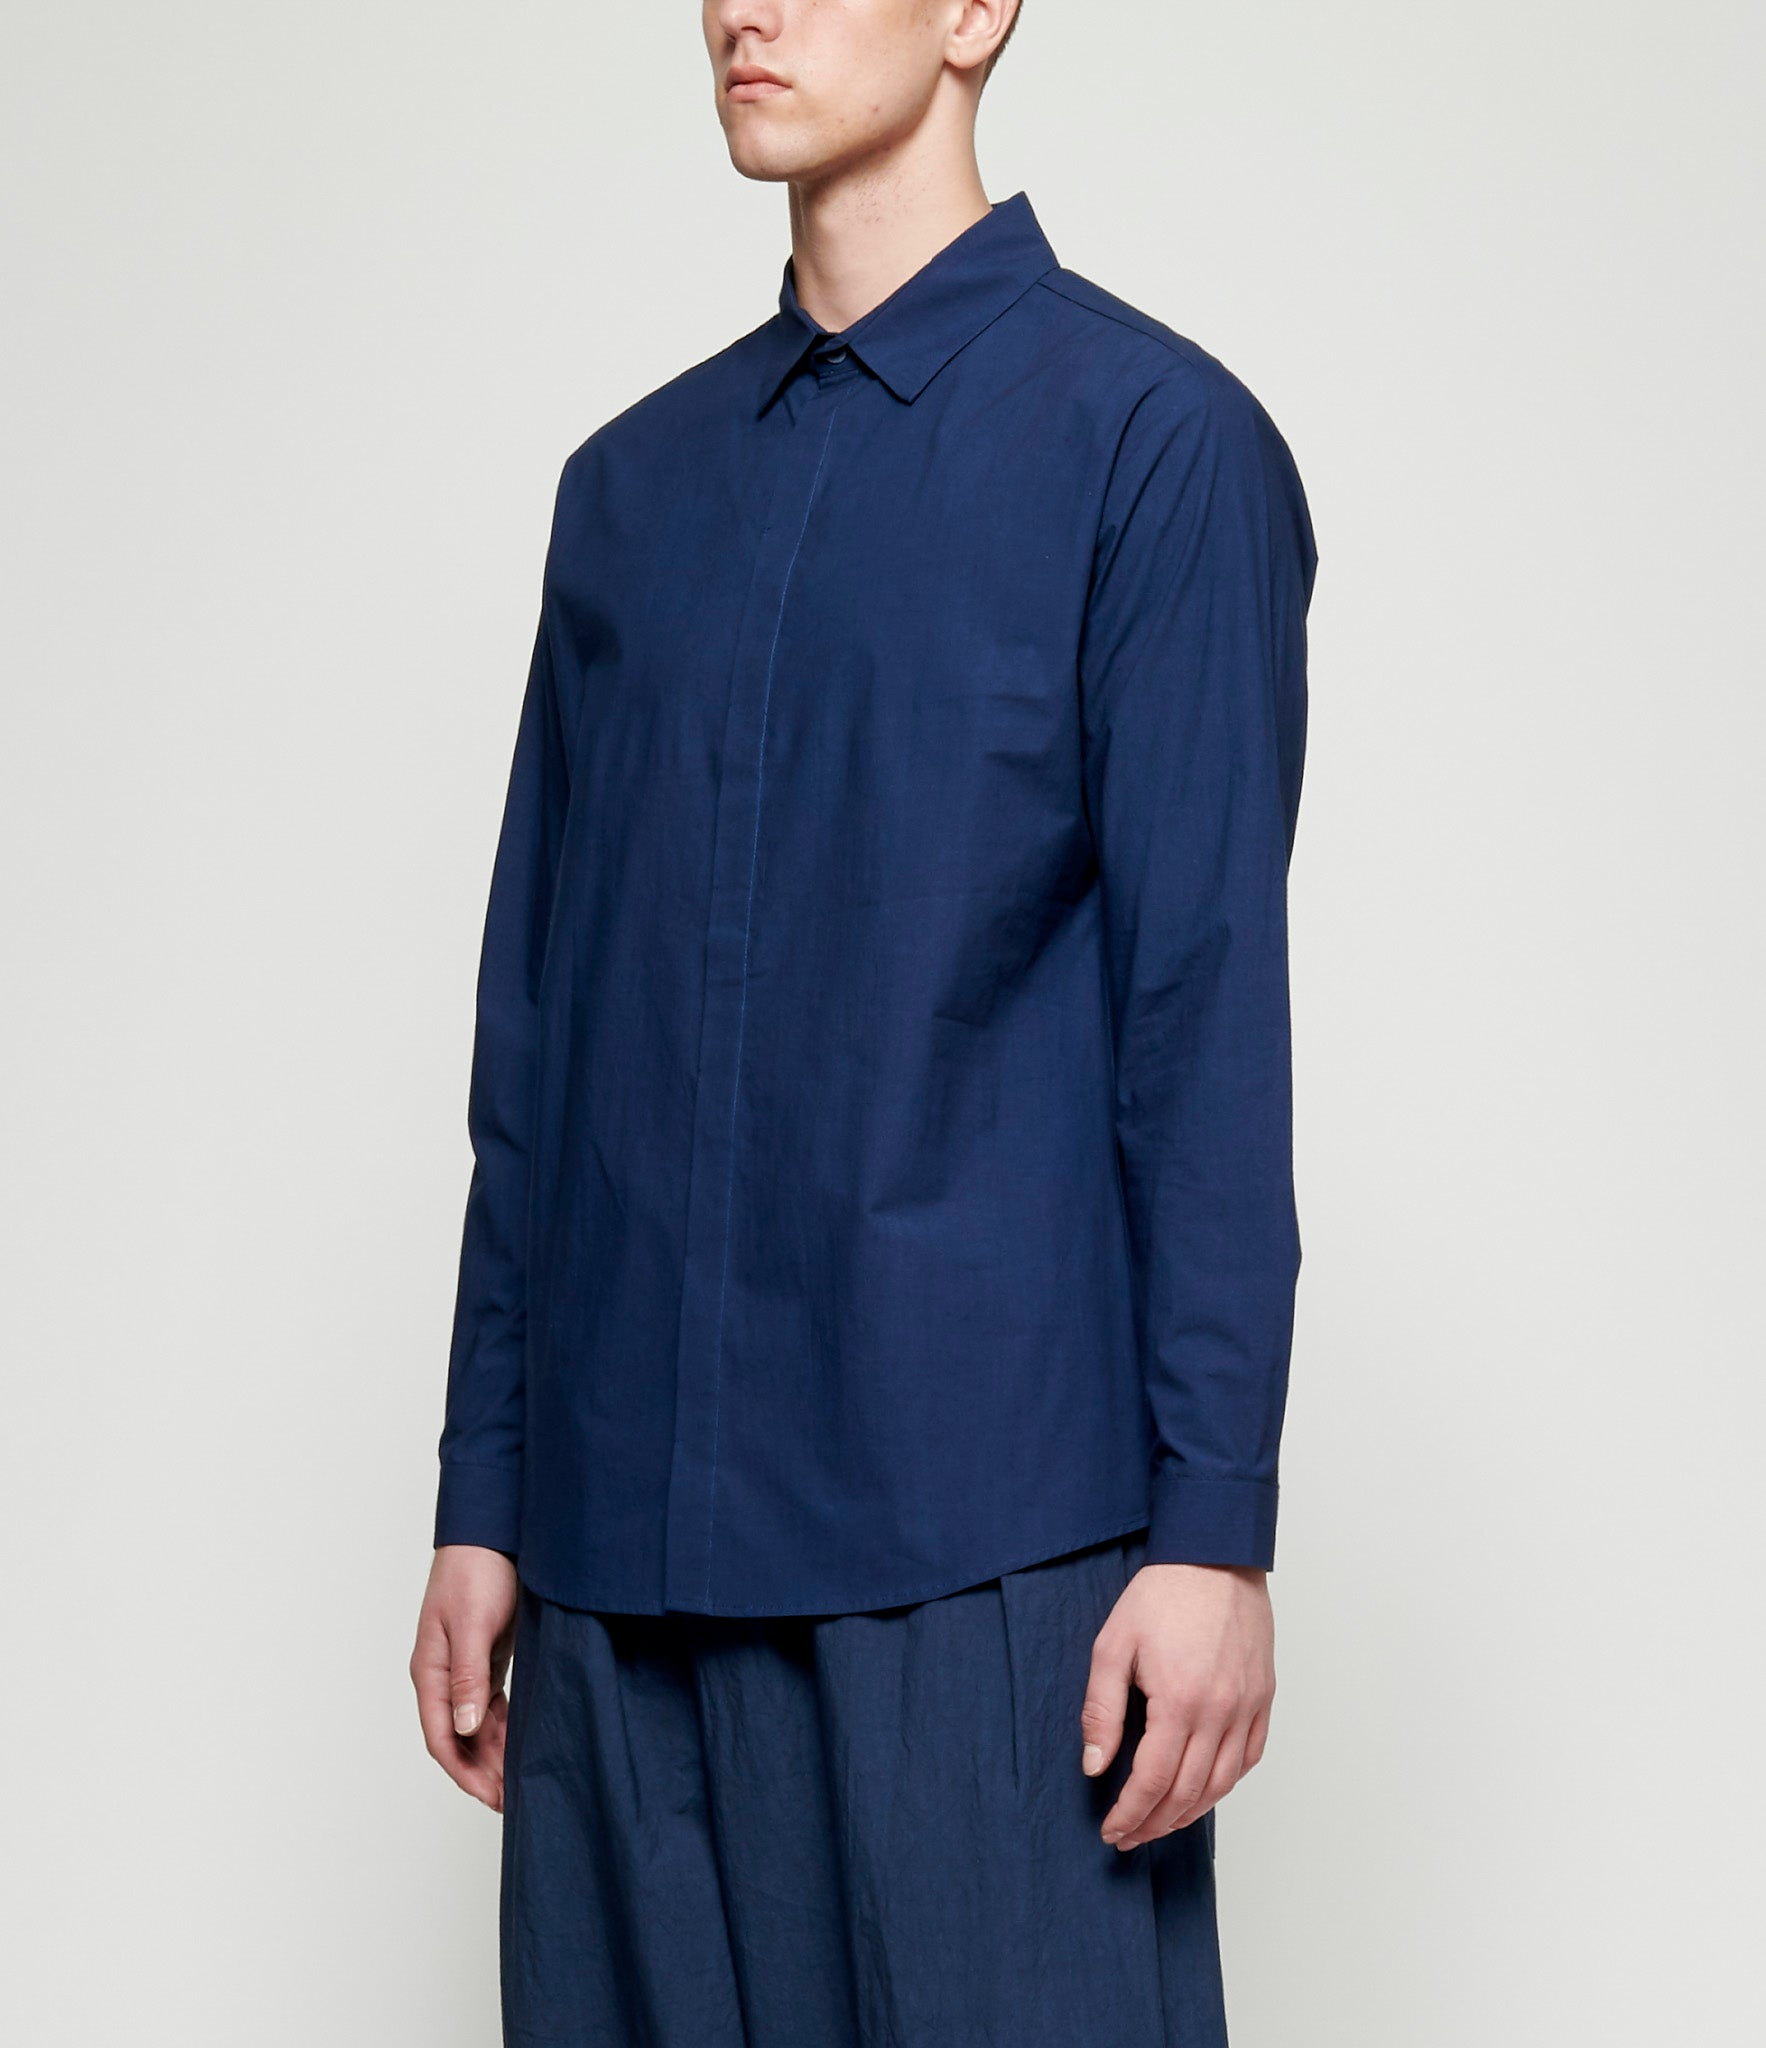 Toogood Cotton Percale Milkman Shirt